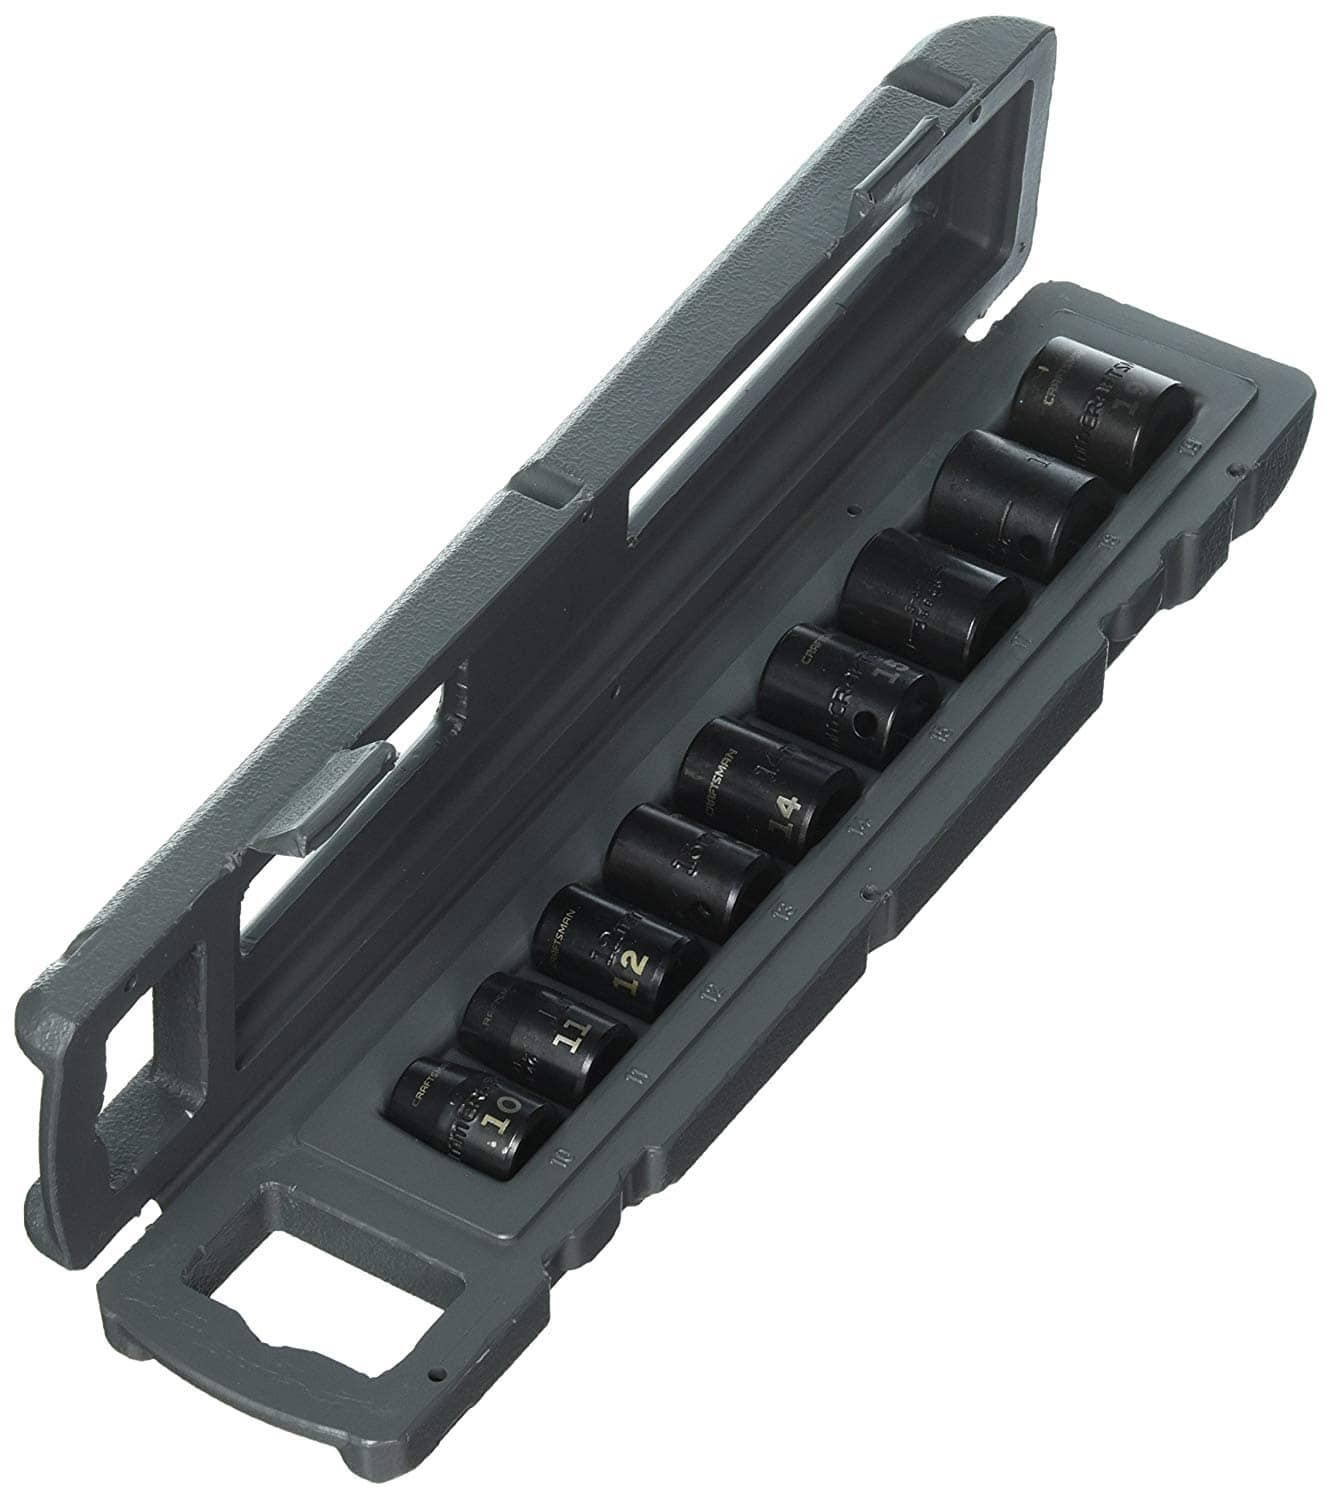 CRAFTSMAN 915881 9 Piece Impact Socket Set, 3/8 in. Drive Metric - $7.00 + free shipping with prime at Amazon